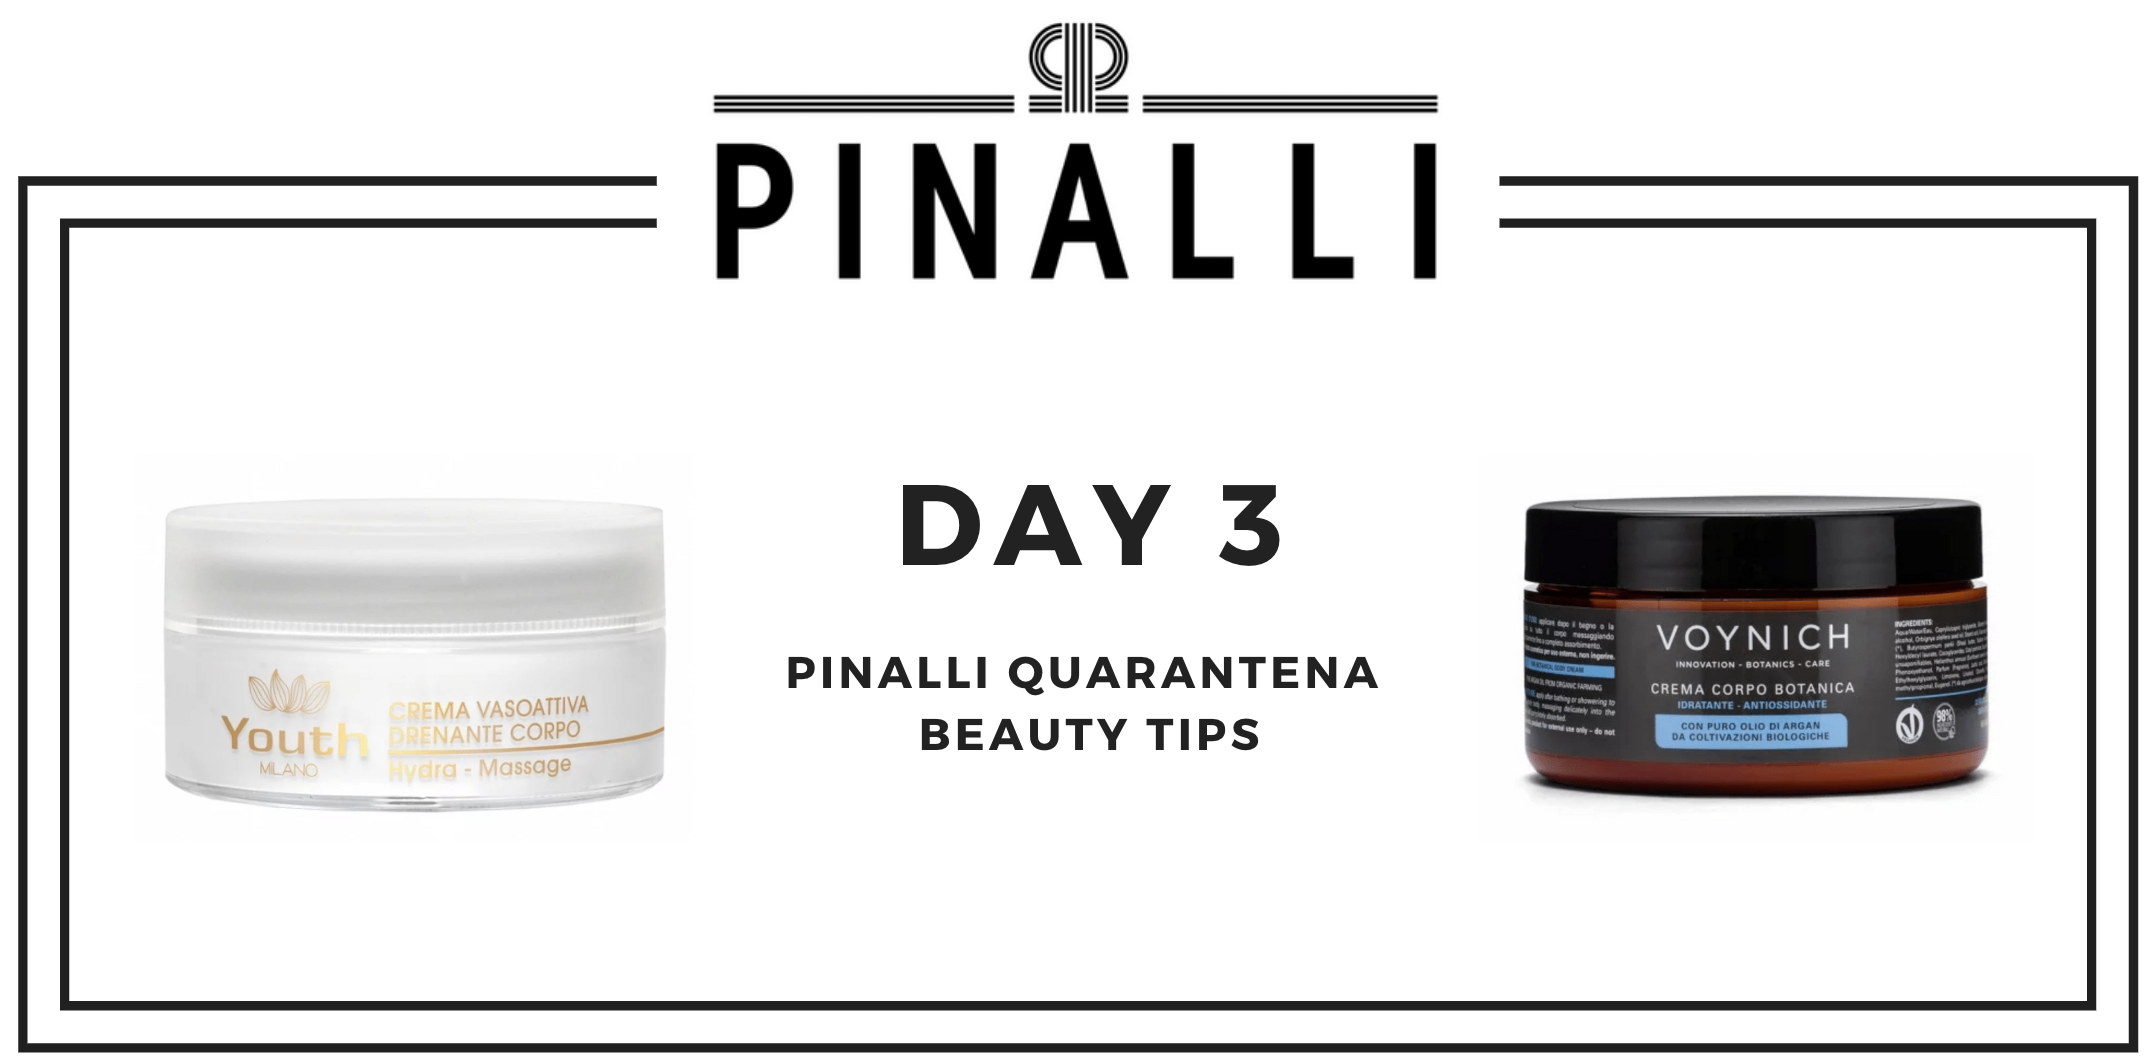 Pinalli Quarantena Beauty Tips_Day3